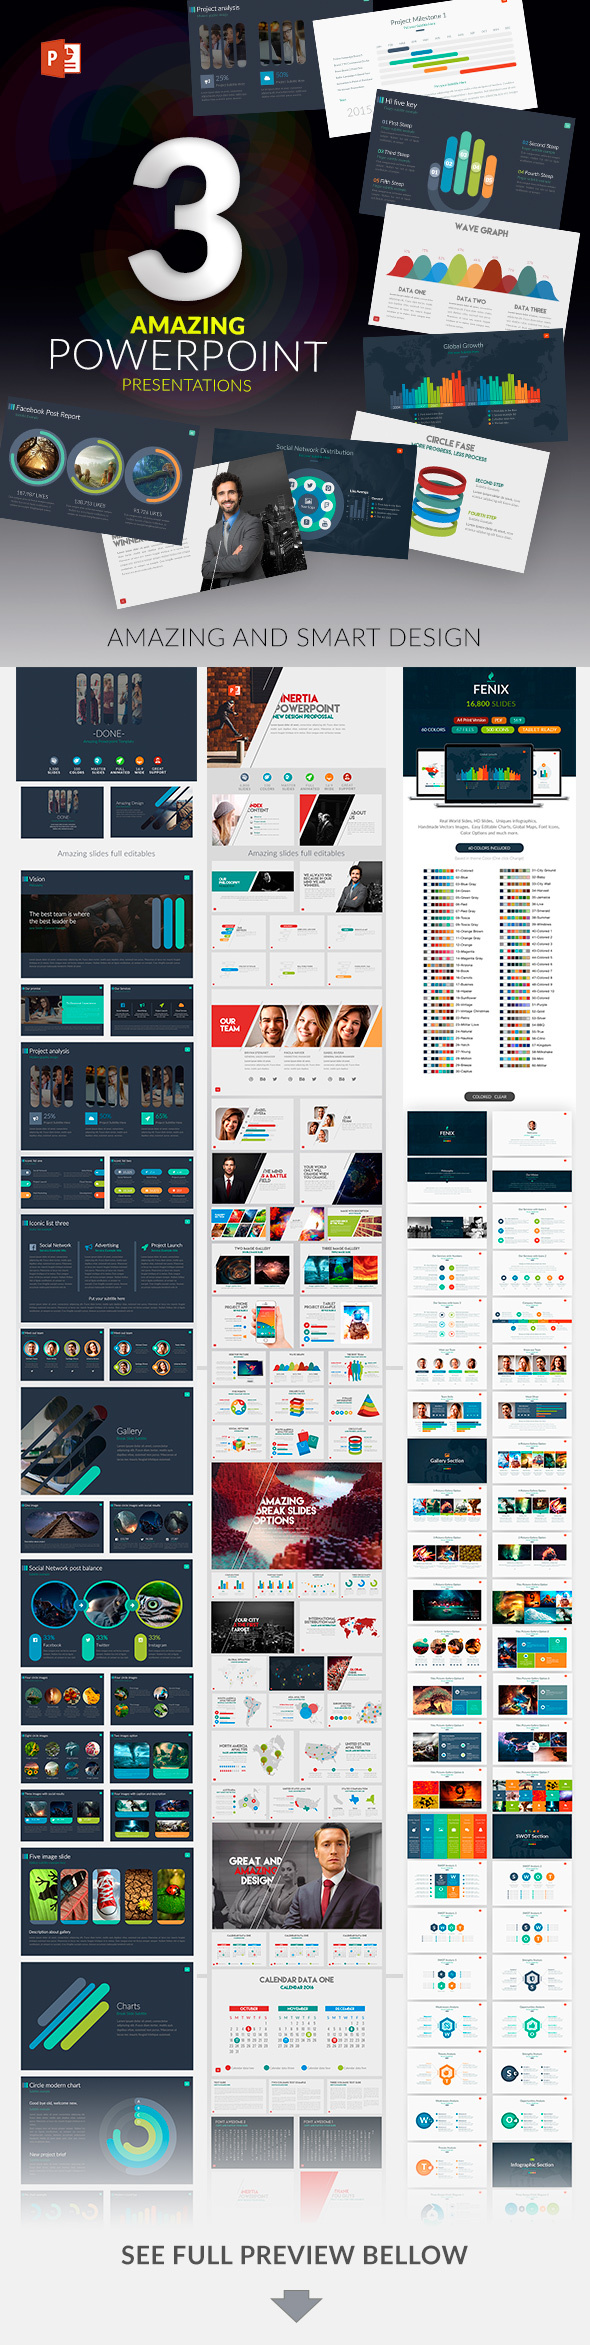 3 powerpoint templates pack template download here http 3 powerpoint templates pack template download here httpgraphicriver toneelgroepblik Images